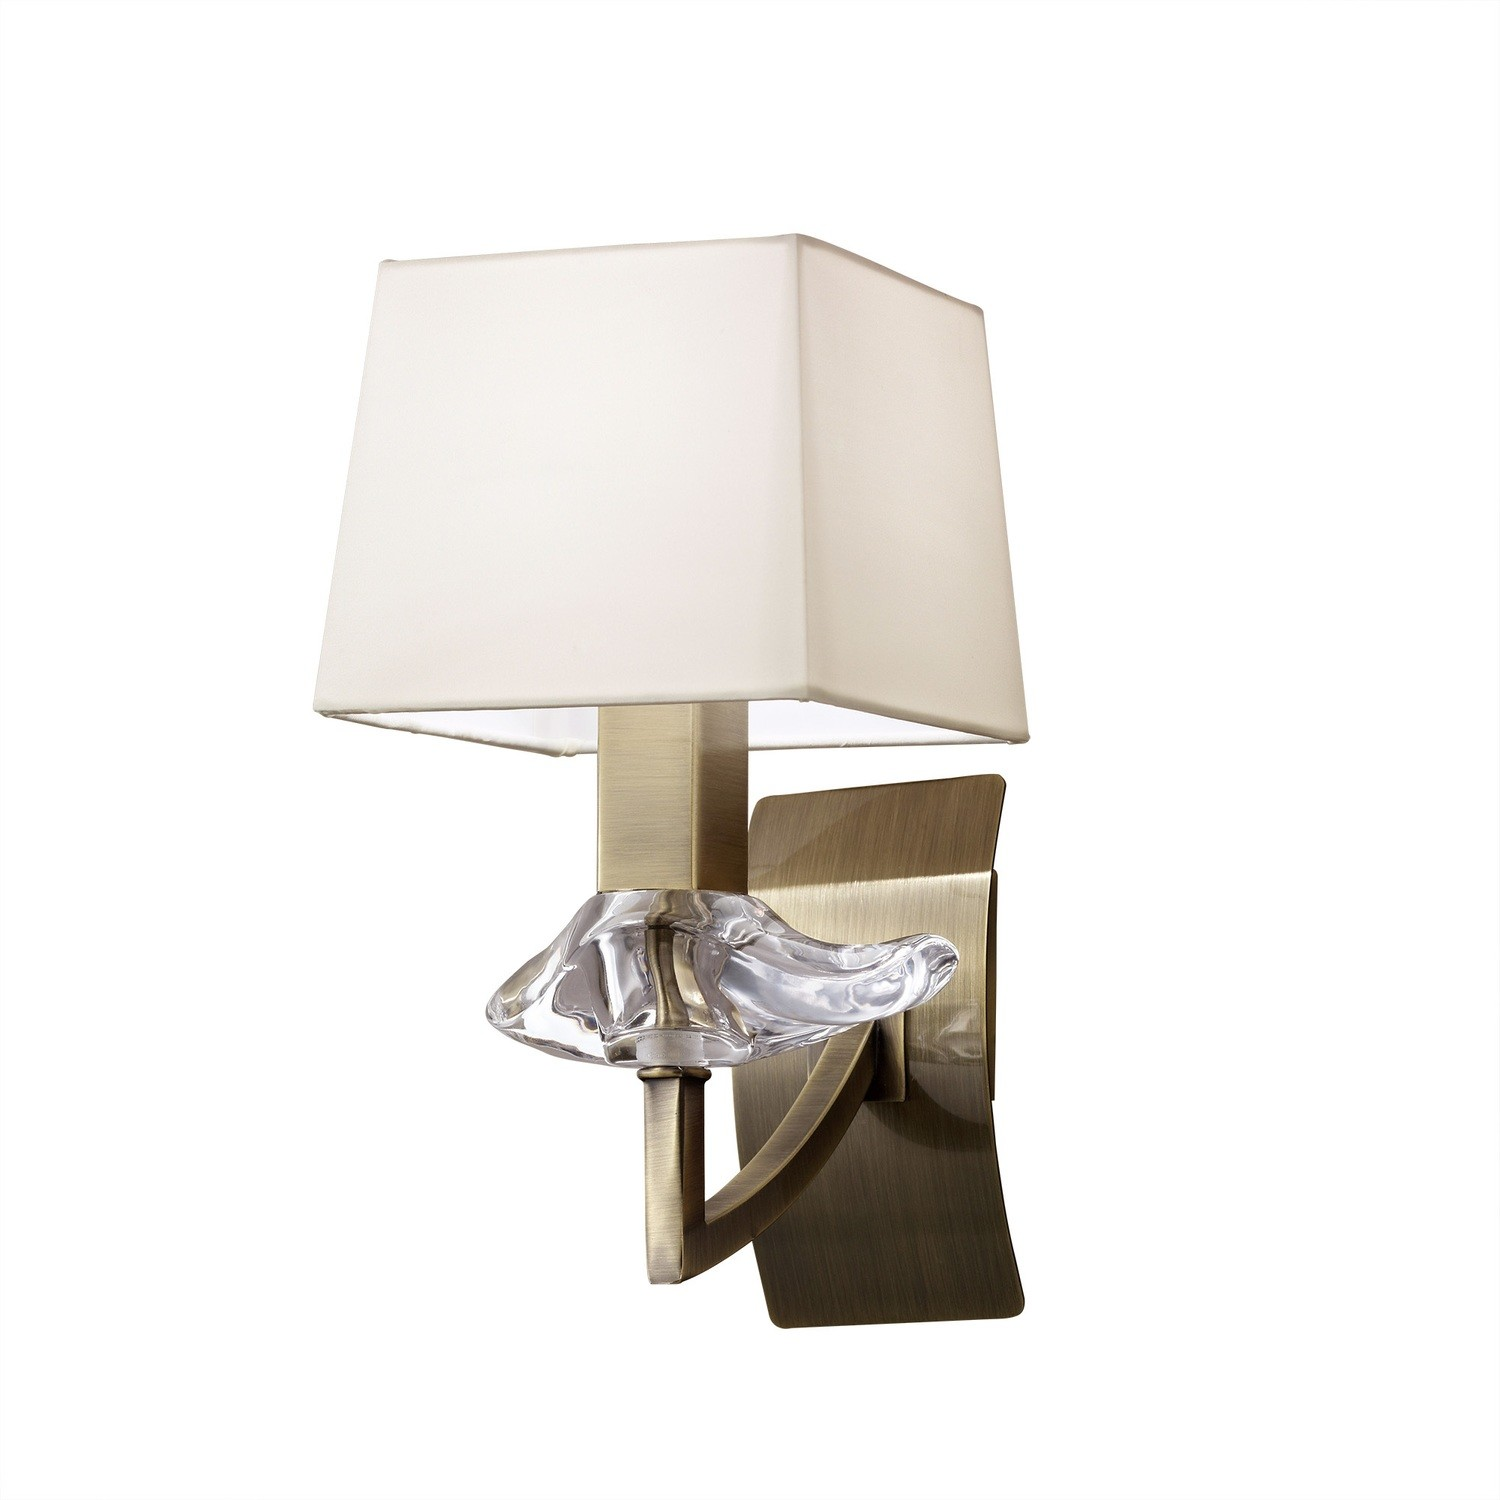 Akira Wall Lamp Switched 1 Light E14, Antique Brass With Cream Shade